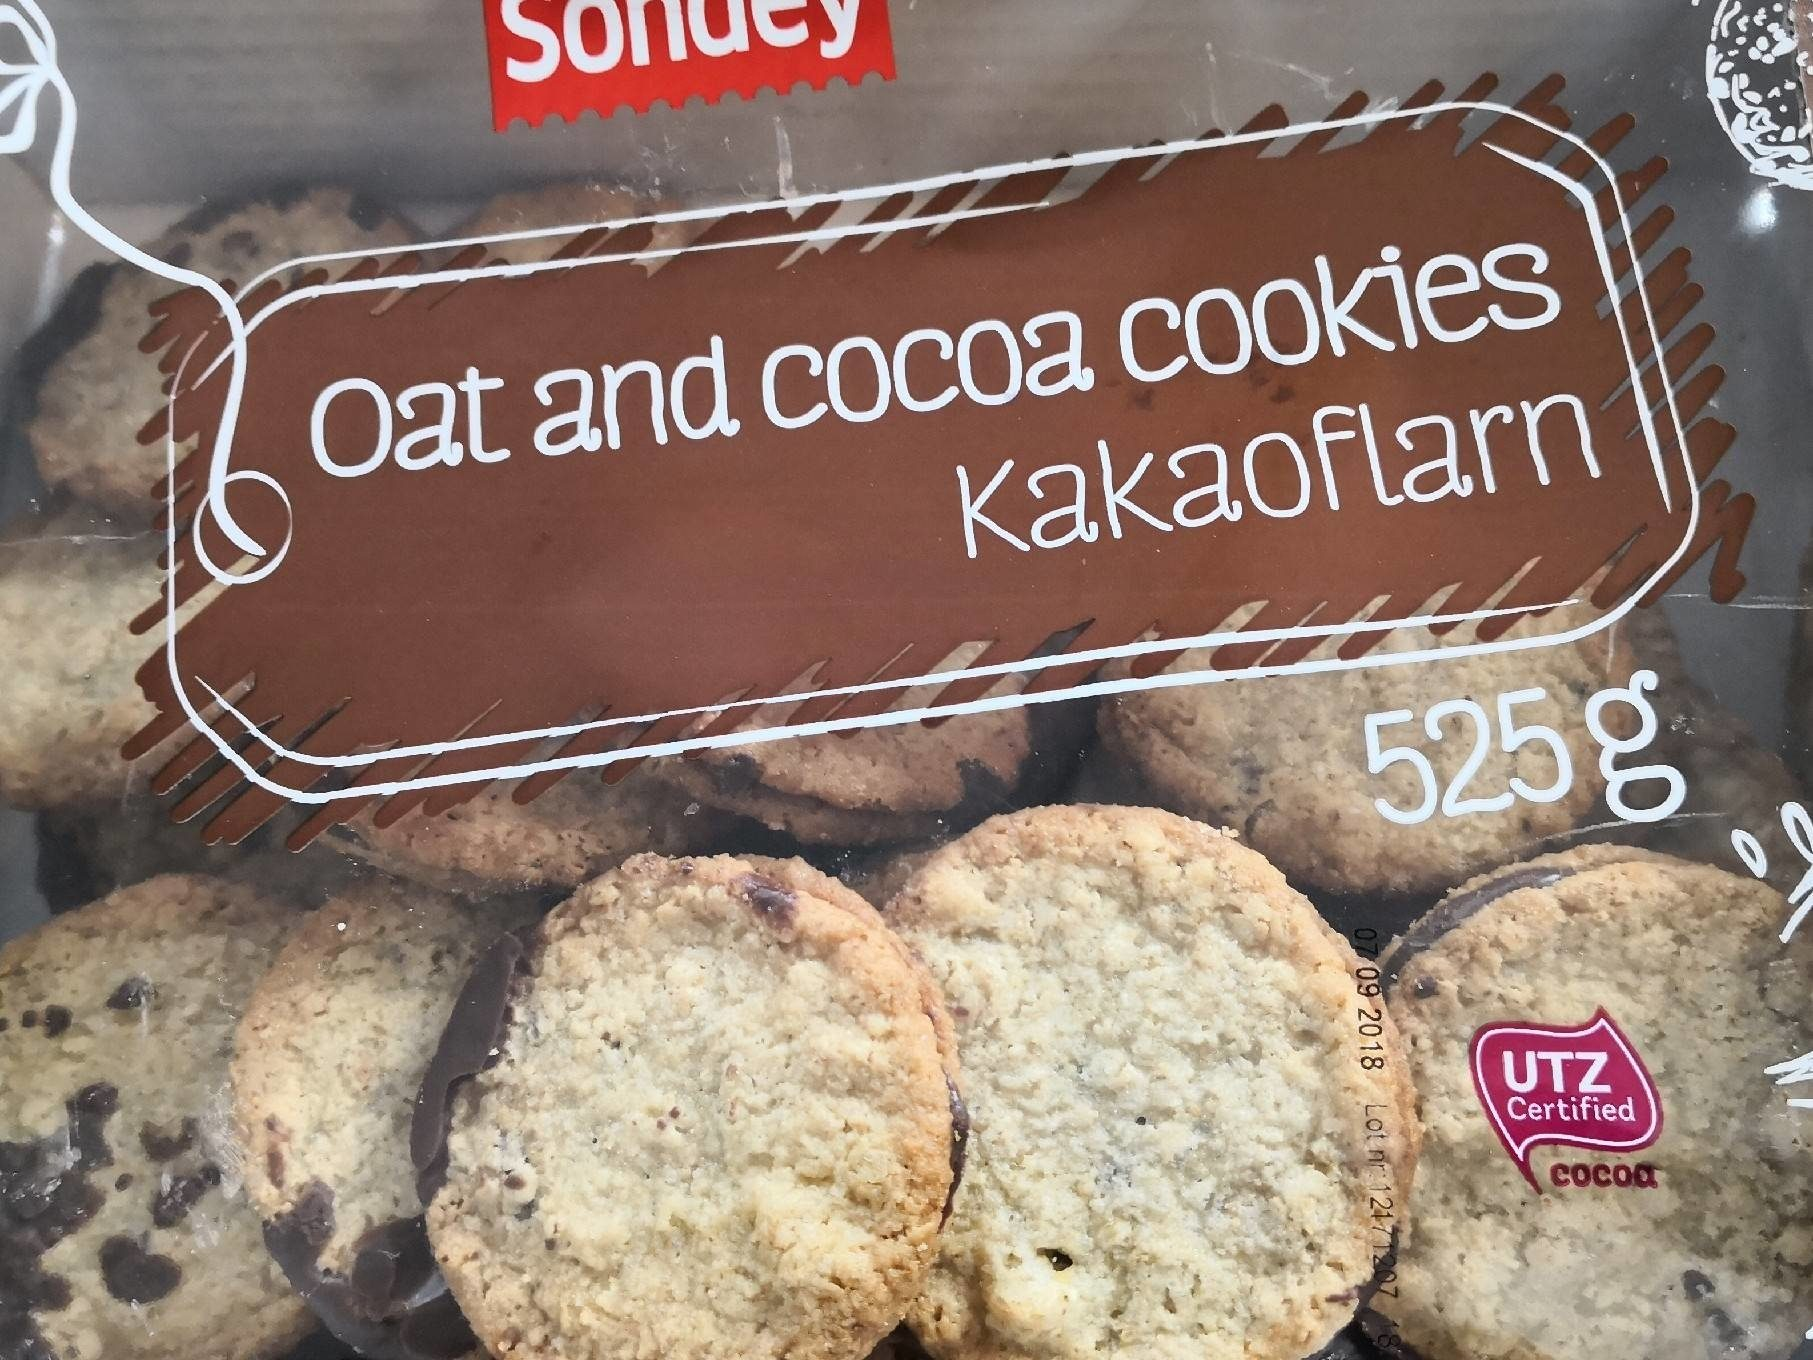 Oat and cocoa cookies - Produit